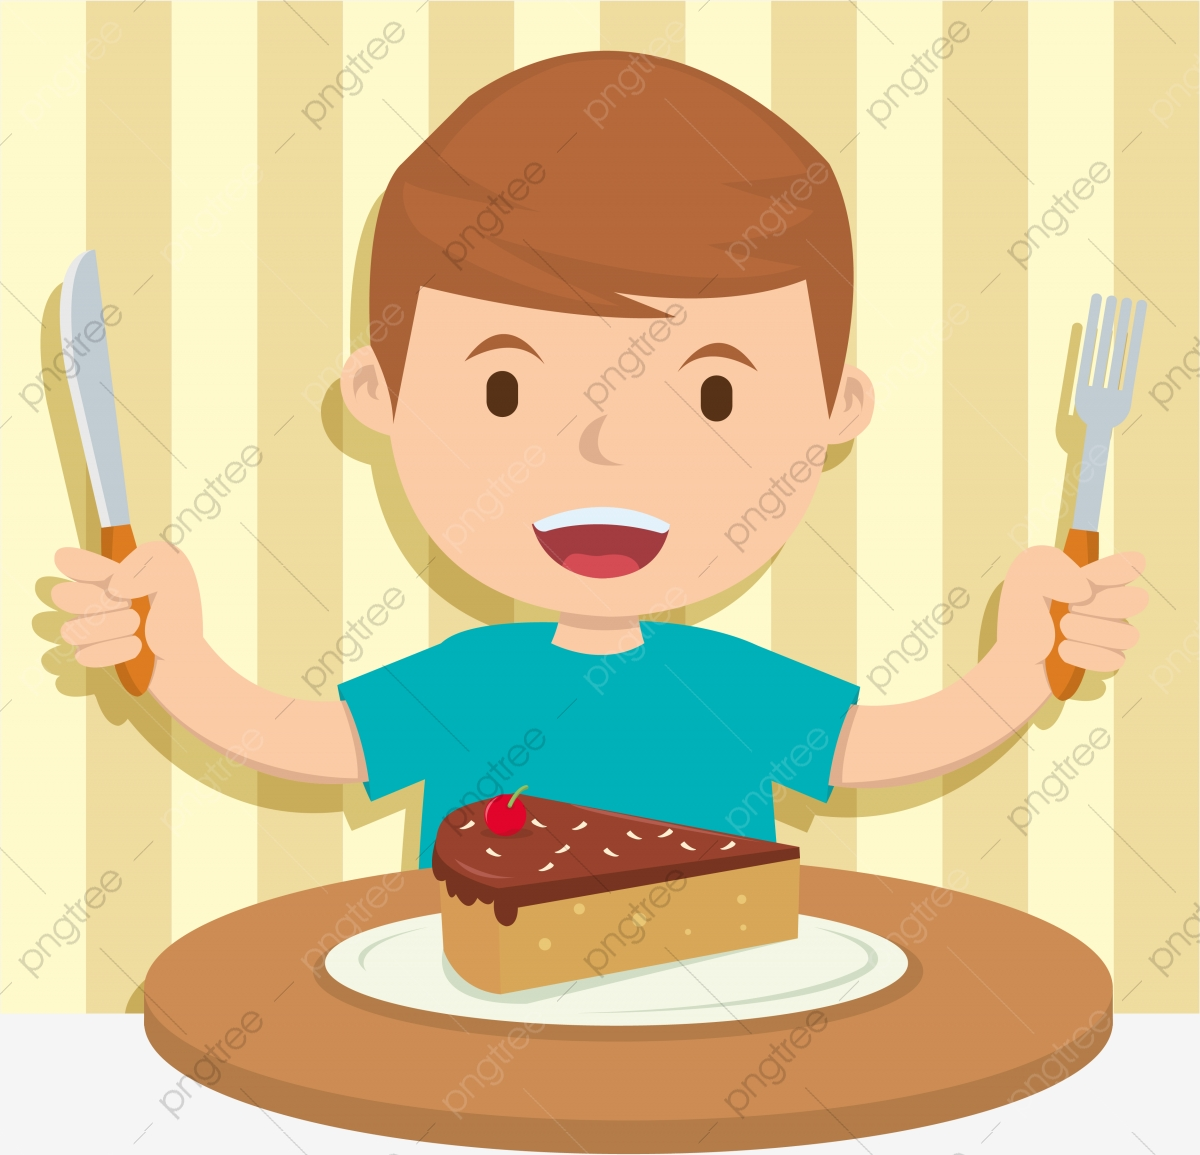 Kids Eating Boy Food Child Png And Vector With Transparent Background For Free Download